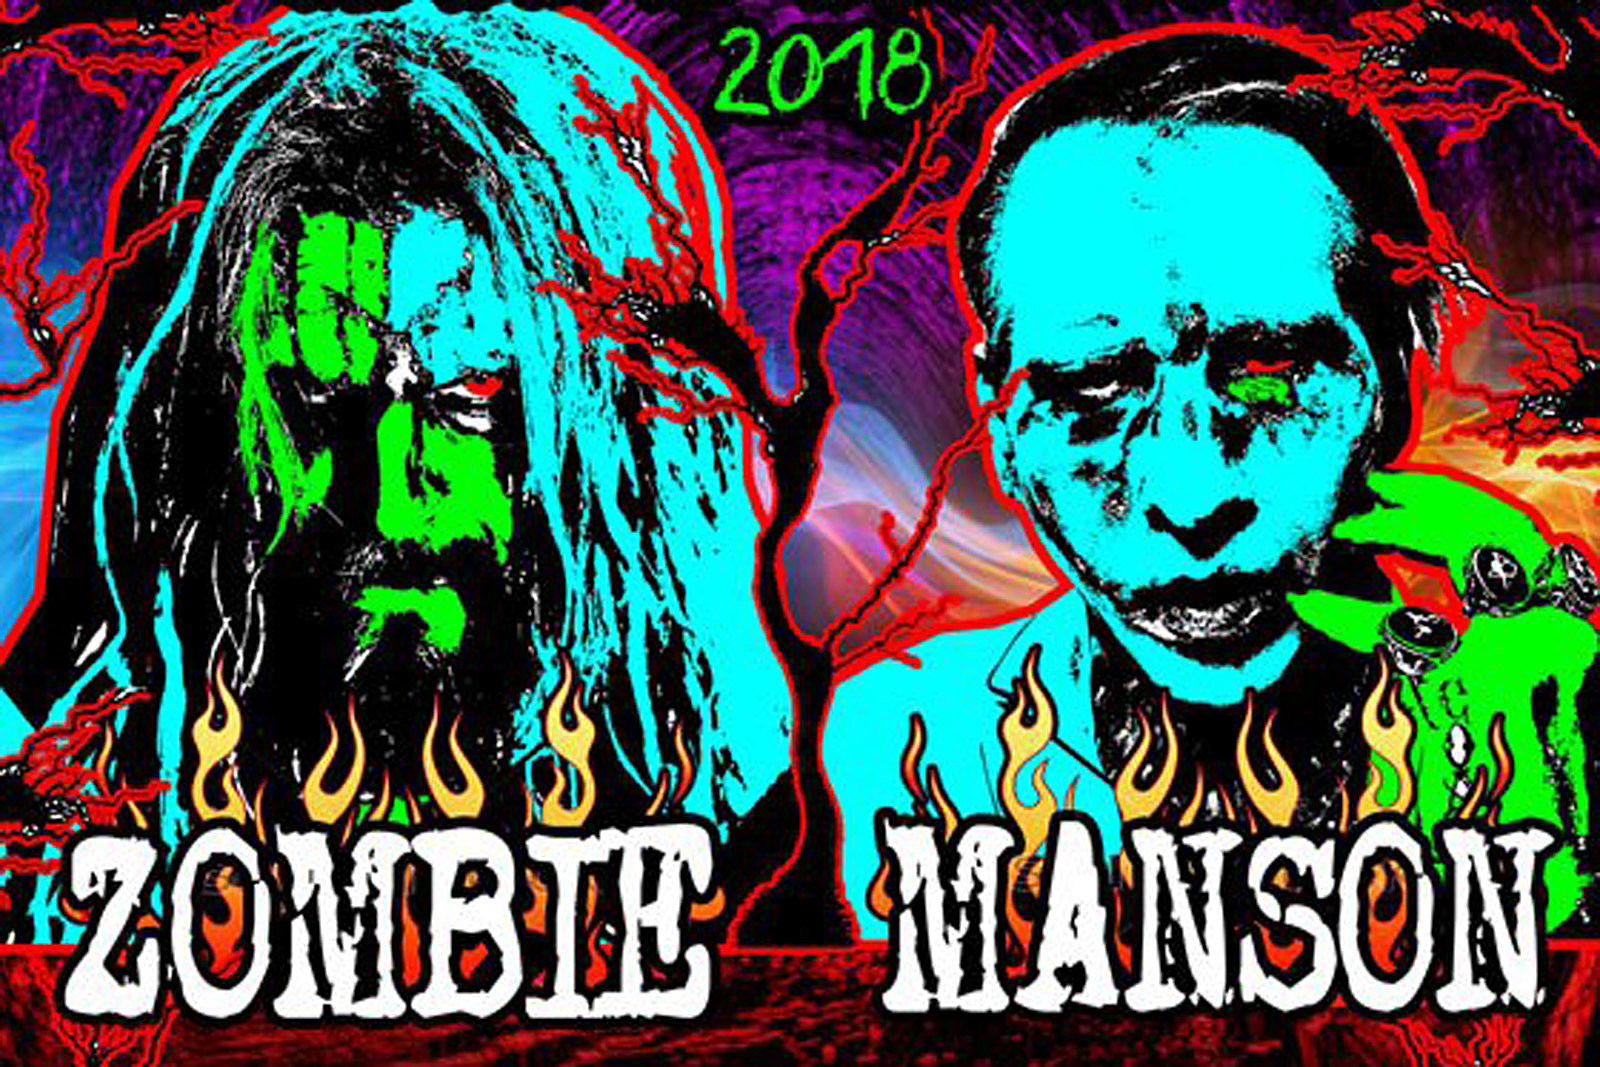 Marilyn manson and rob zombie announce 2018 tour kristyandbryce Choice Image